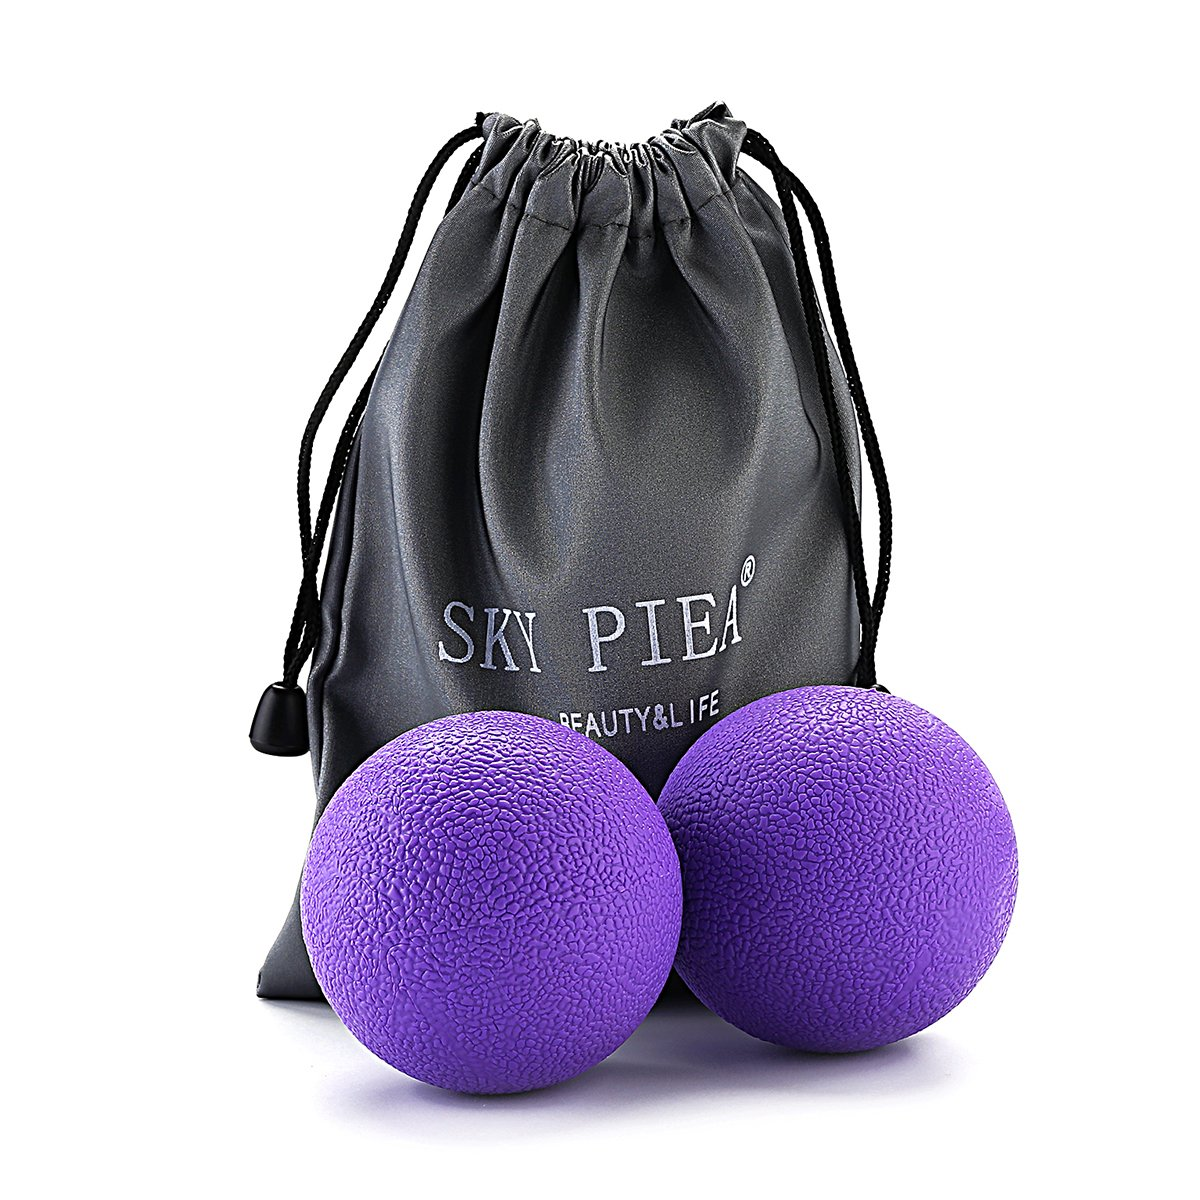 Massage Therapy Balls, Sky Piea Deep Pressure, Trigger Point, Myofascial Release Physical Therapy Used in Yoga, Pilates Instant Tension Pain Relief Relax Sore Muscles Rubber Firm Balls